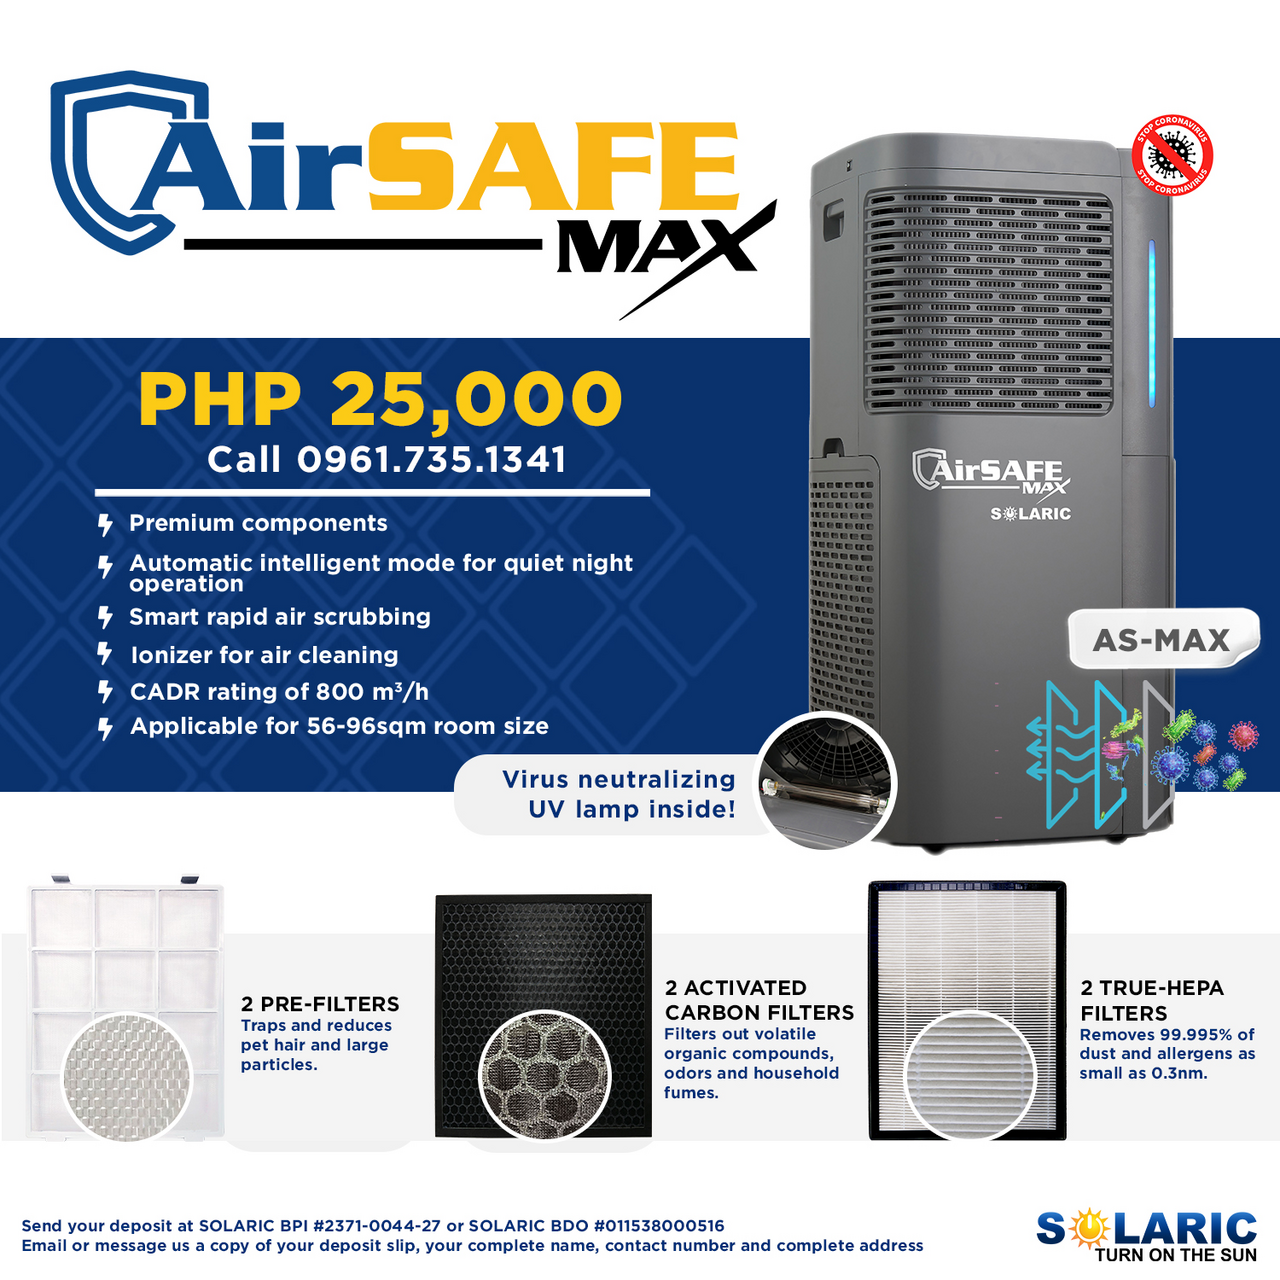 What is AirSAFE?